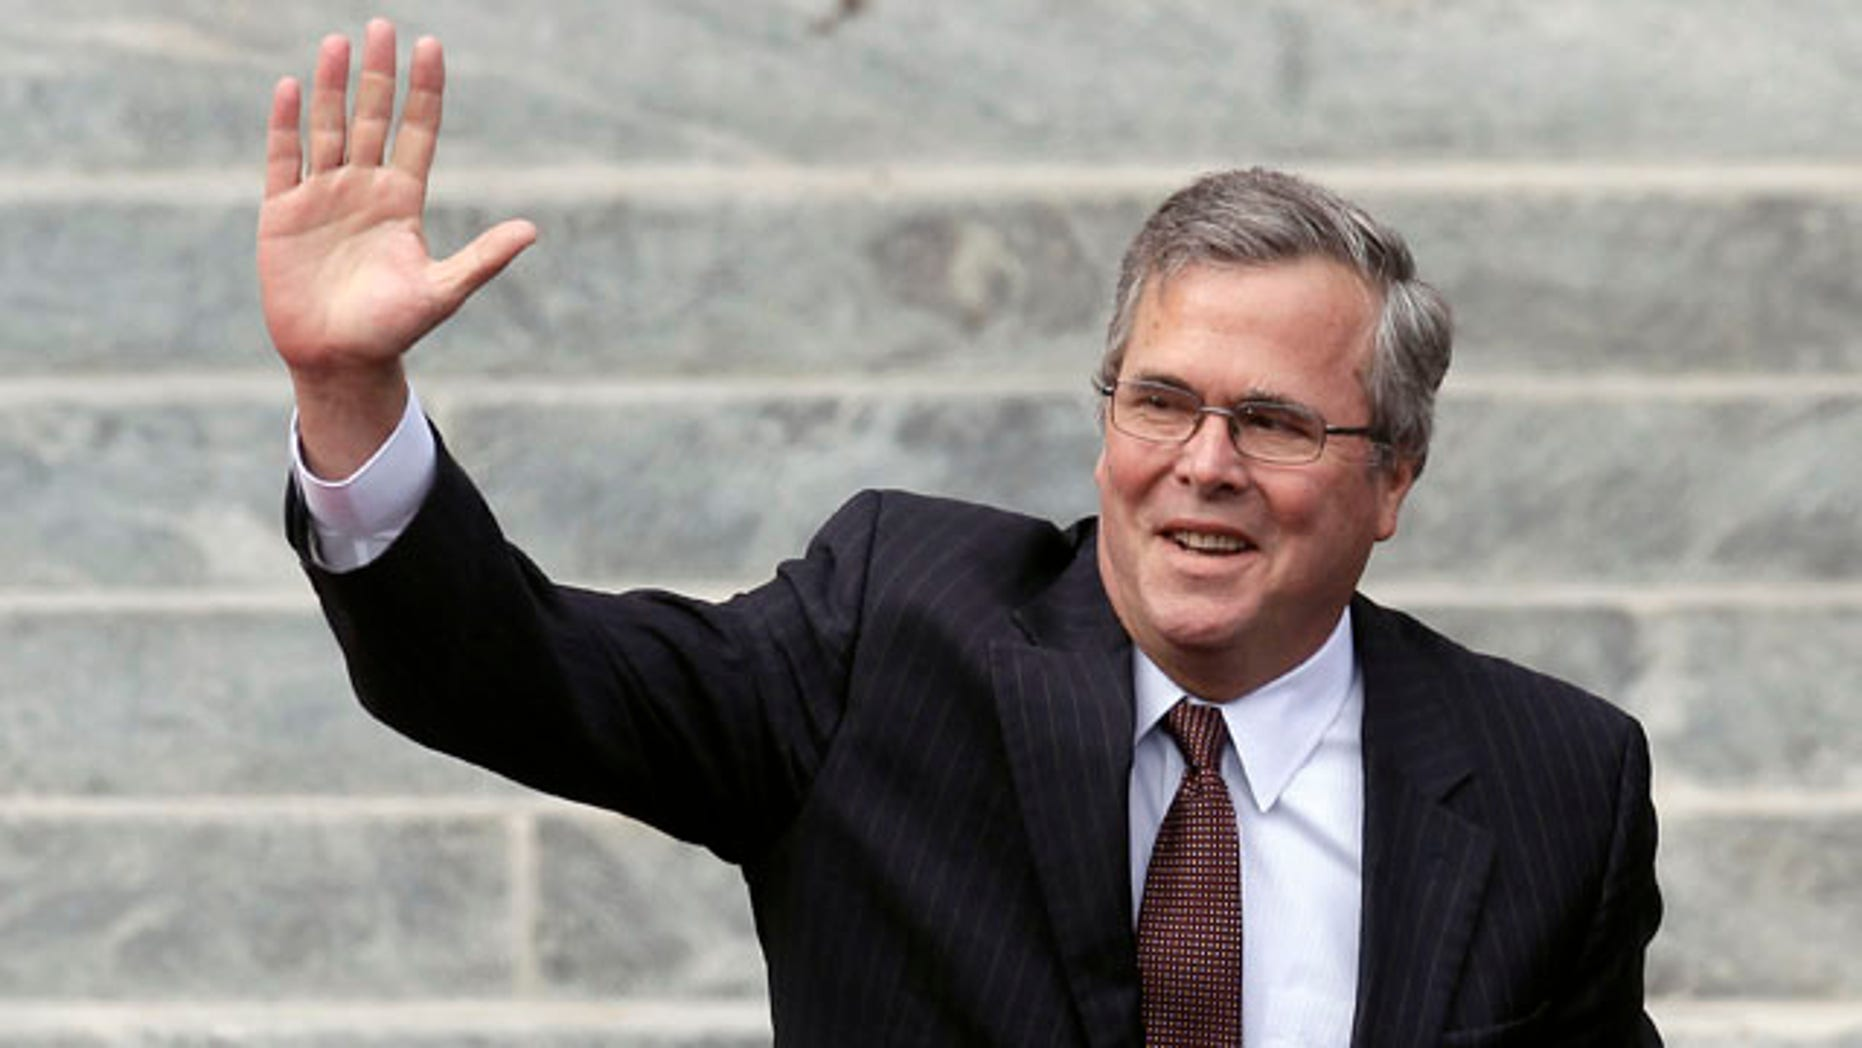 Former Florida Gov. Jeb Bush waves as he is introduced to the crowd during inauguration ceremonies for Republican Rick Scott outside the Old Capitol in Tallahassee, Fla.